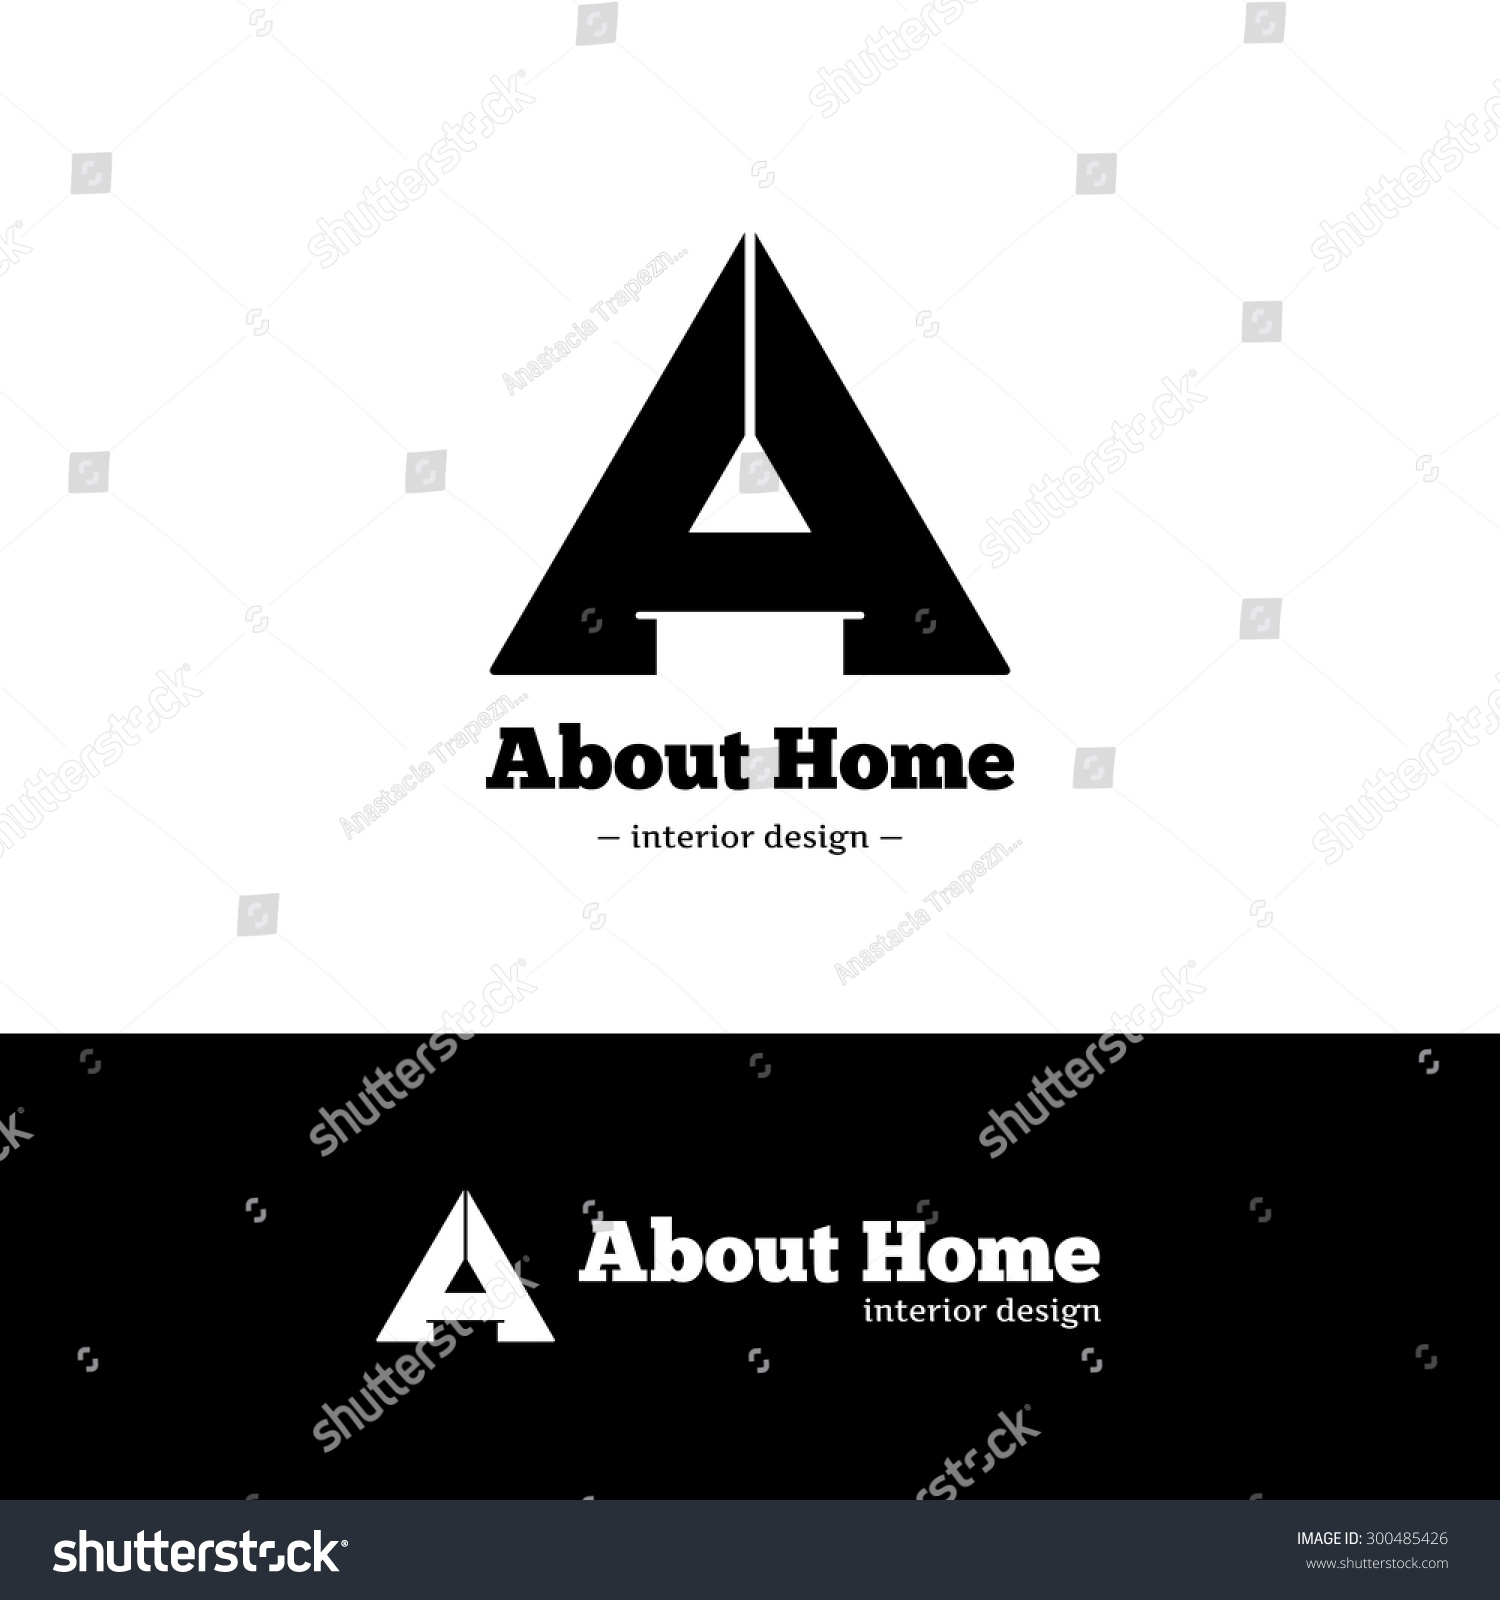 Vector Trendy Black And White Minimalistic Negative Space